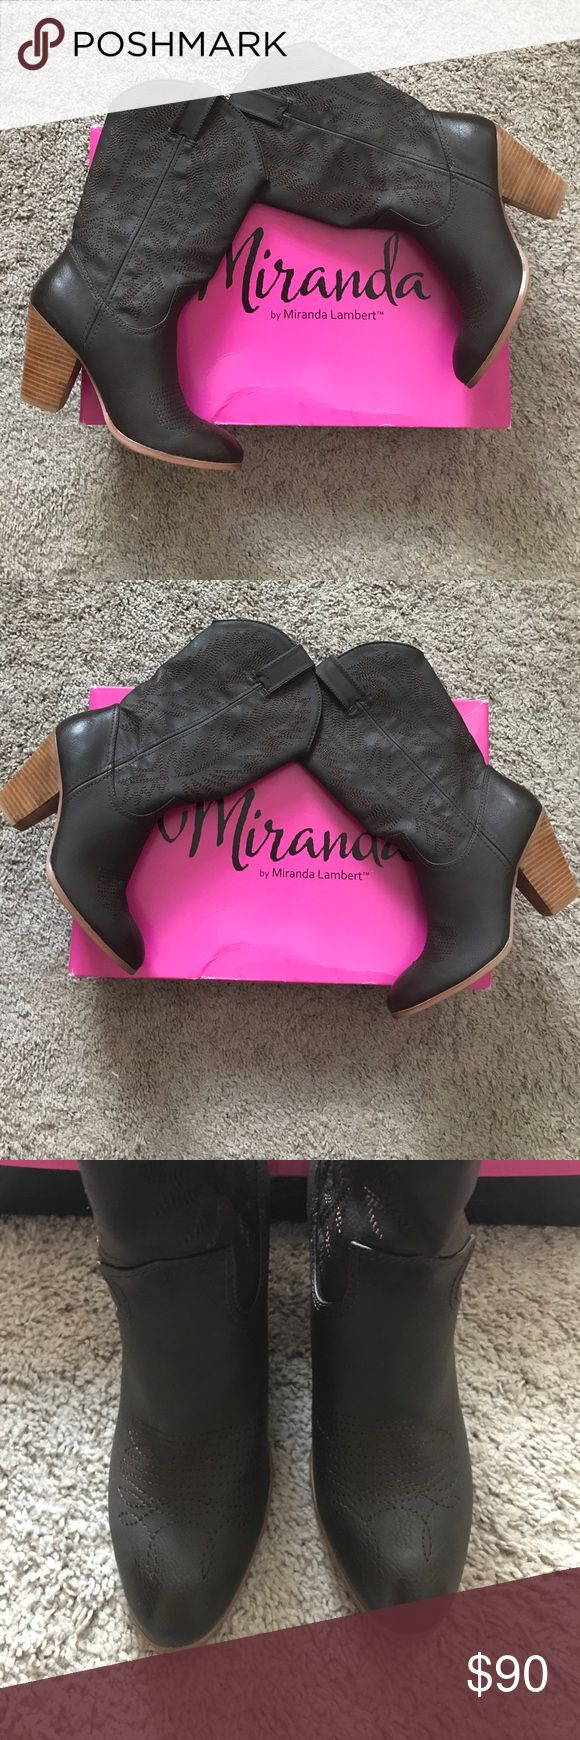 "Miranda cowgirl boots Only worn once--like new condition!  Miranda Lambert Cowgirl boots in box---3"" heel. This luscious shade of chocolate brown will go with everything you own!!! Miranda Lambert Shoes Heeled Boots"